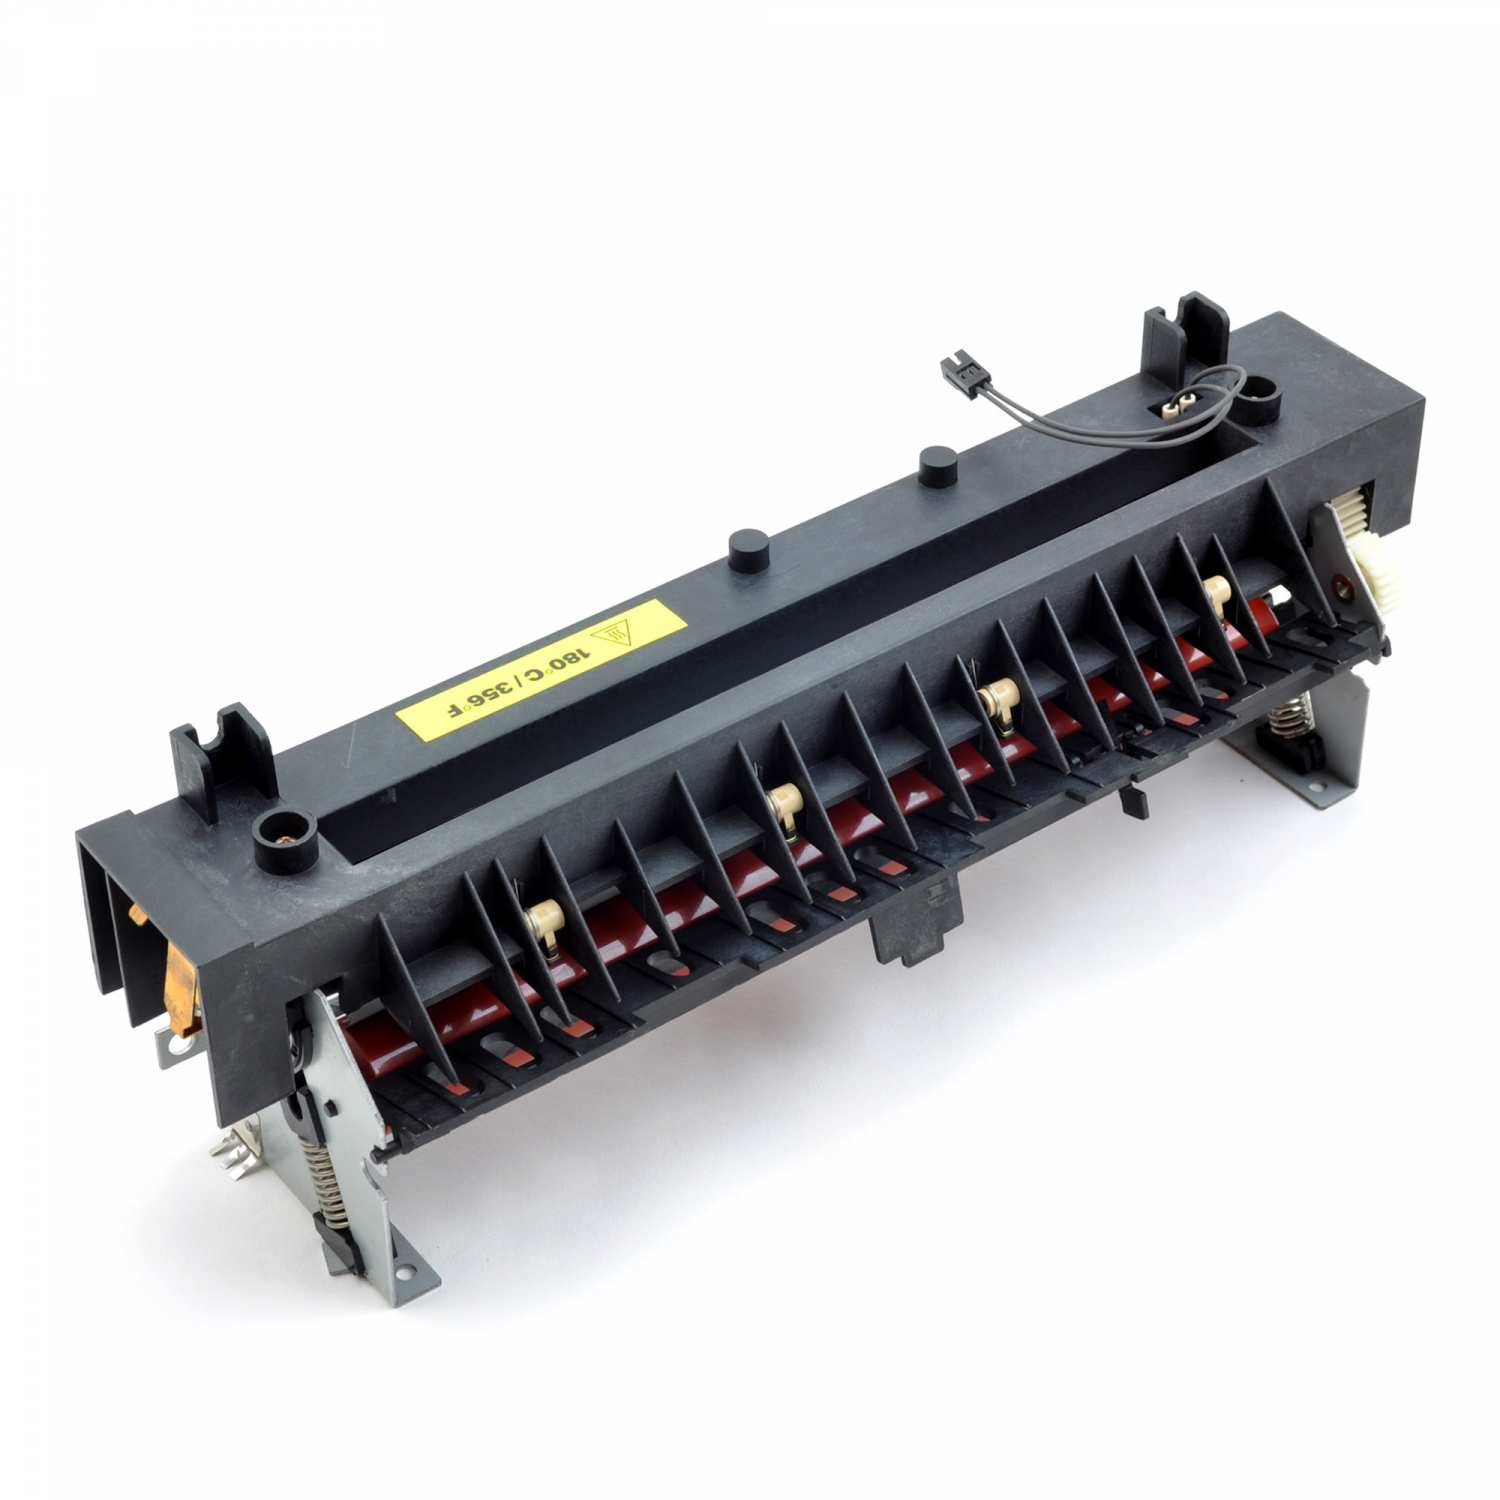 12G3982-AEX Fuser Assembly (110V) - M410 Exchange for Lexmark Optra M41x